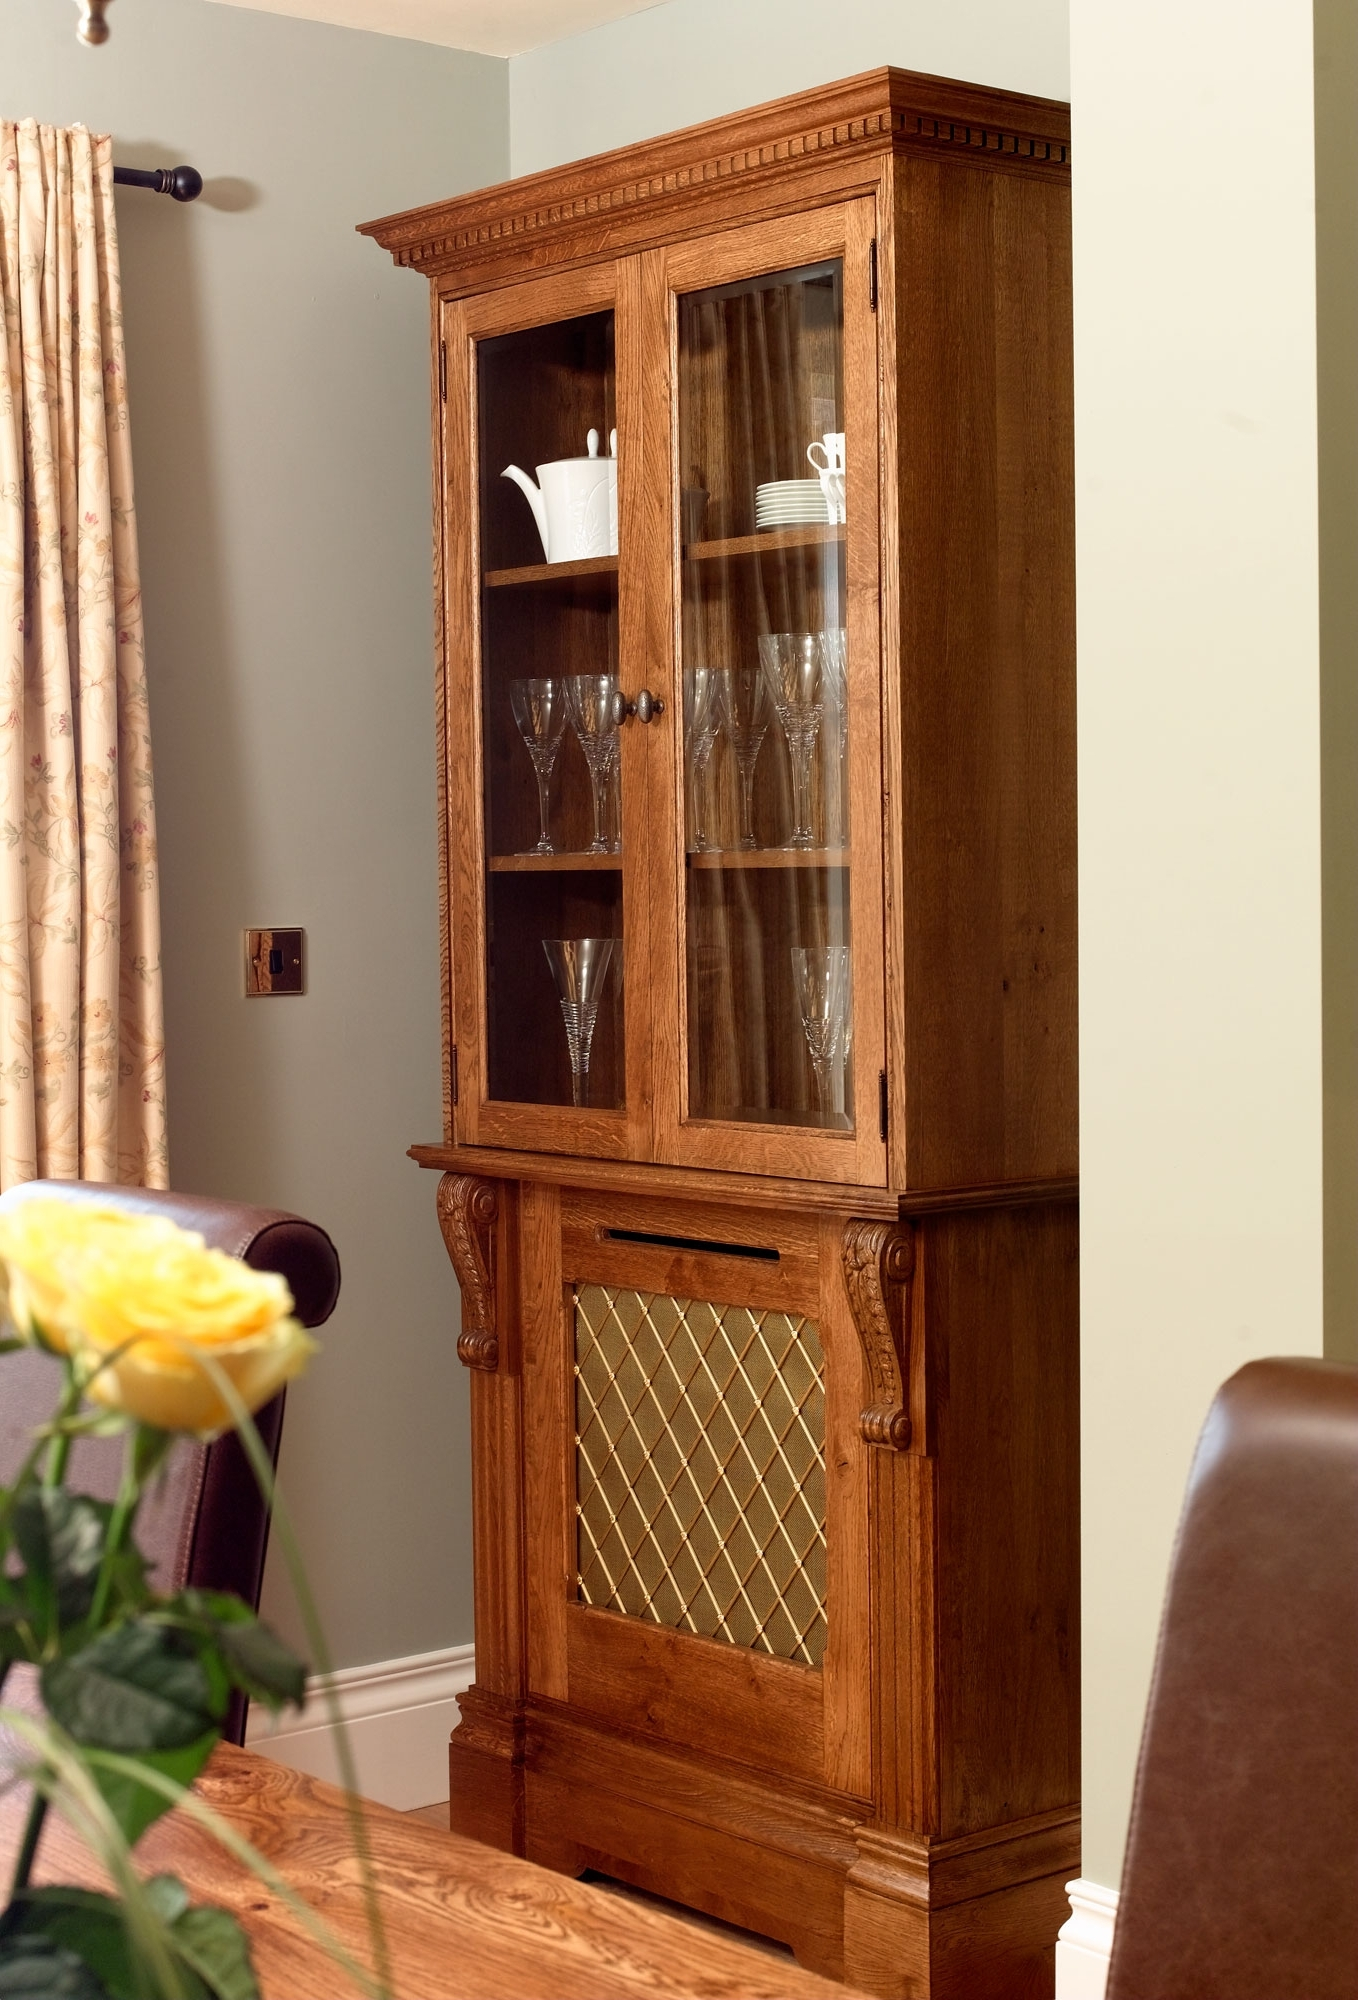 Radiator Cover And Bookcases Regarding Favorite Bookcases – Radiator Cabinets – Radiator Covers With Bookcase (View 9 of 15)